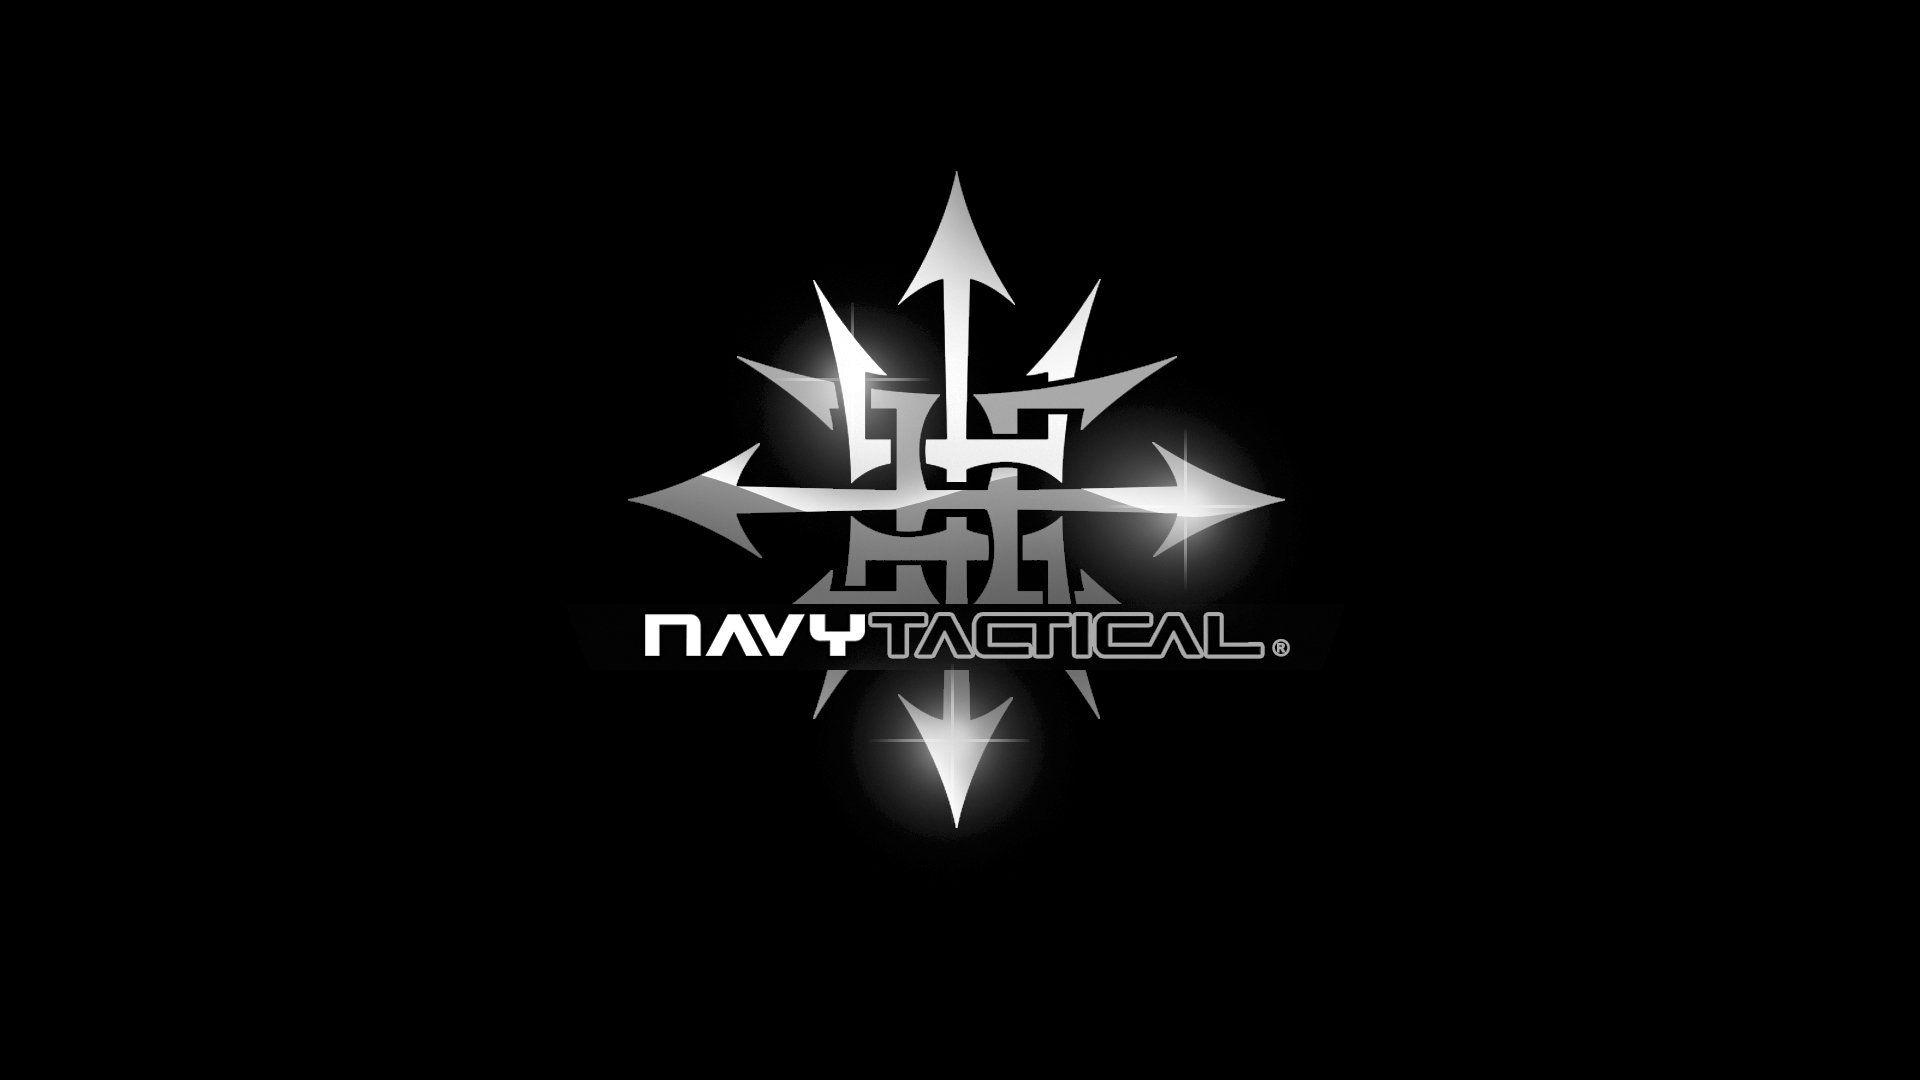 Navy logo wallpapers wallpaper cave us navy logo wallpapers group 54 altavistaventures Image collections